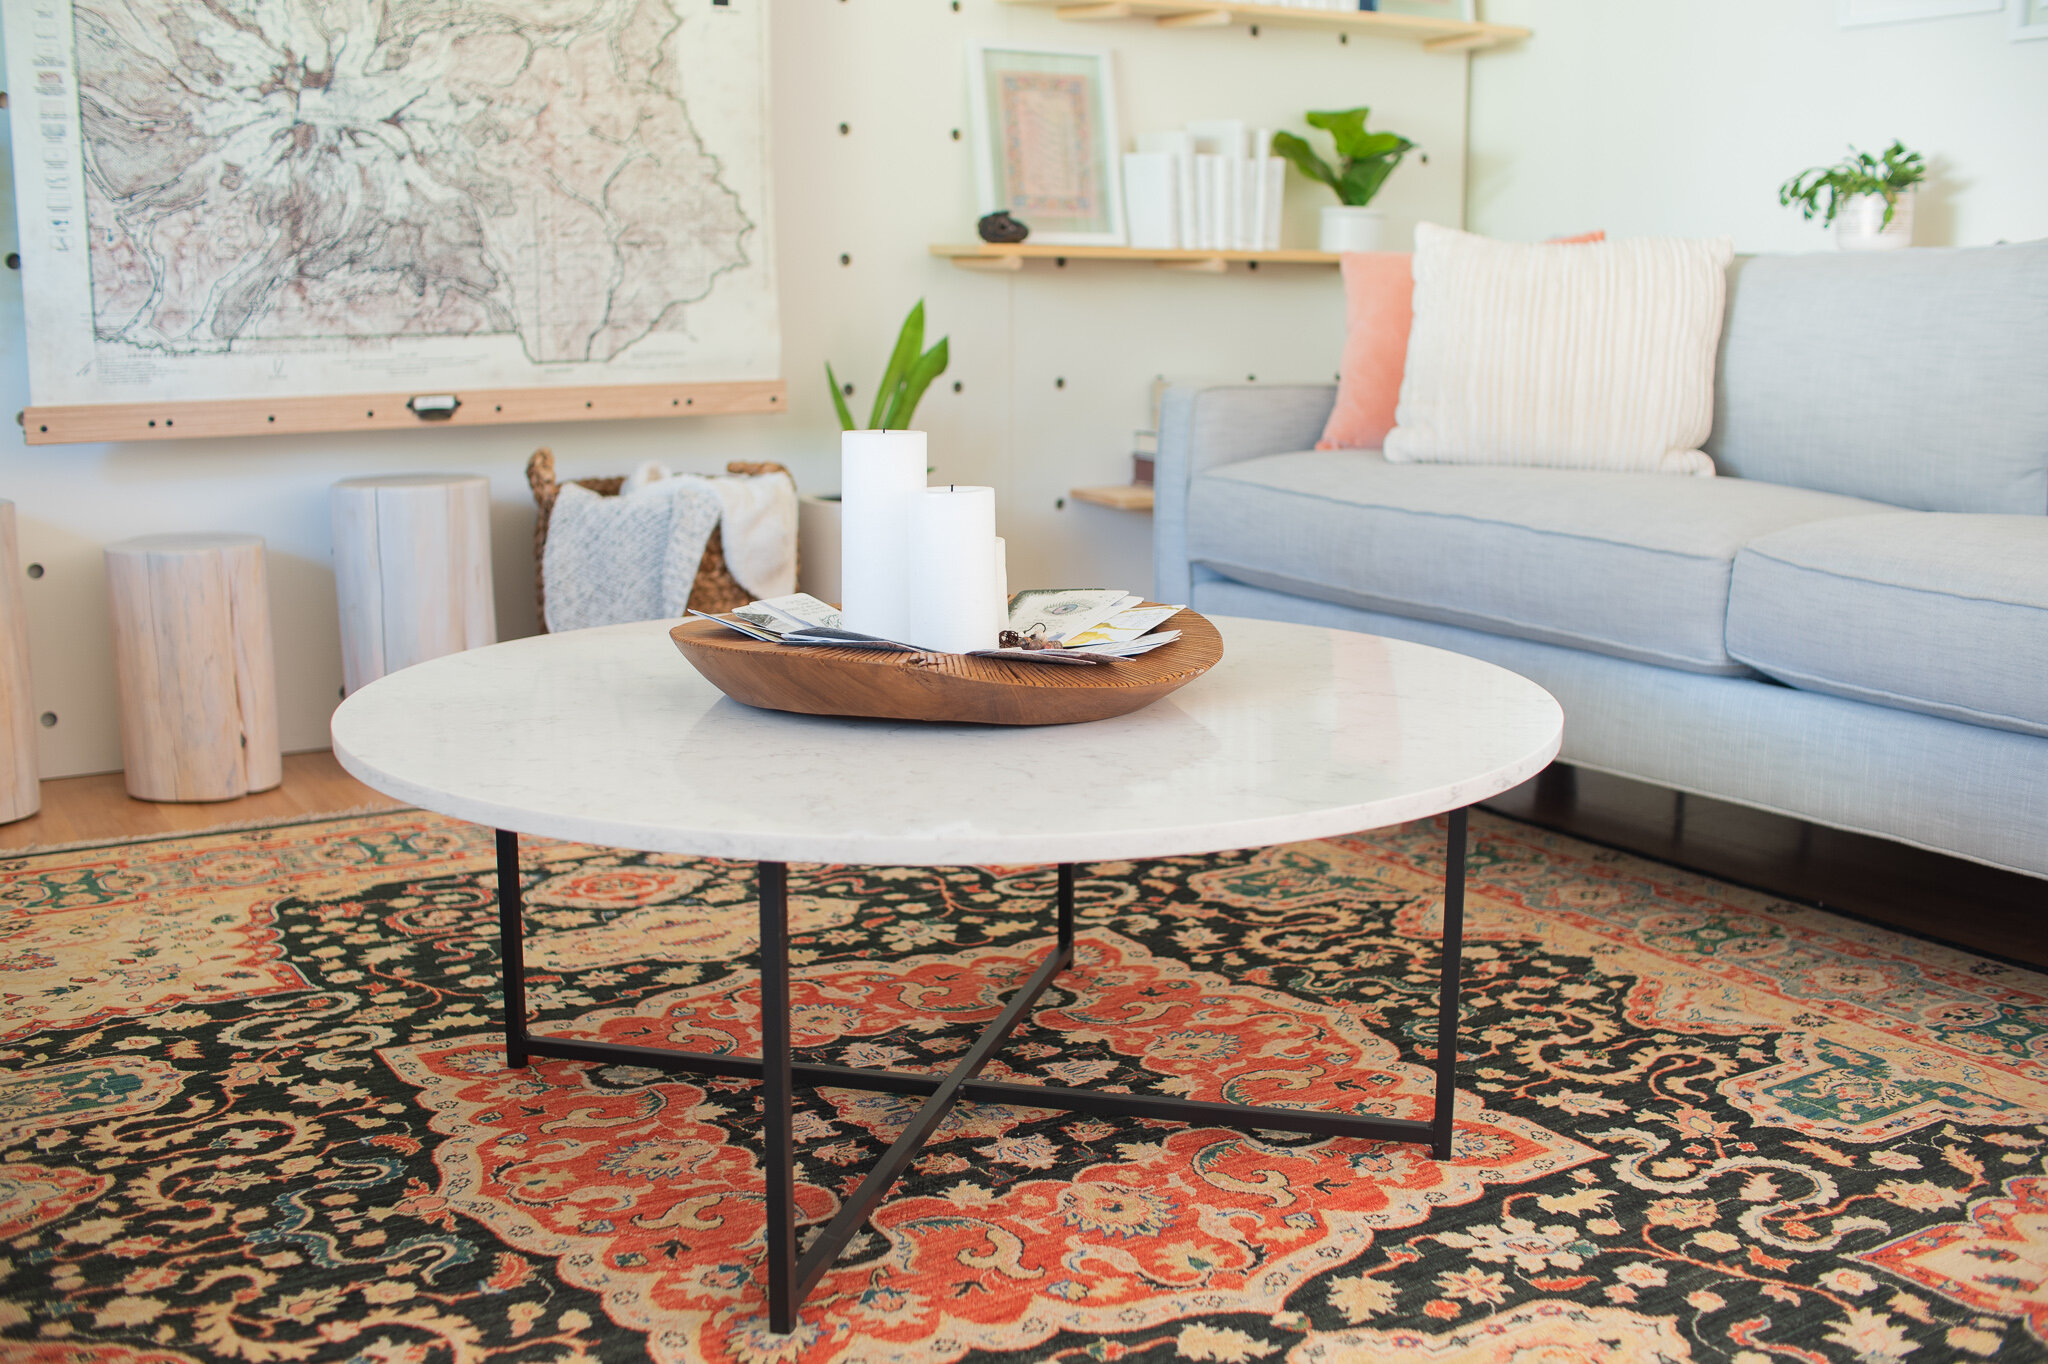 Furniture made from real materials such as wood, metal, or stone is the way to go. They last longer and don't off-gas nasty toxins in our home.